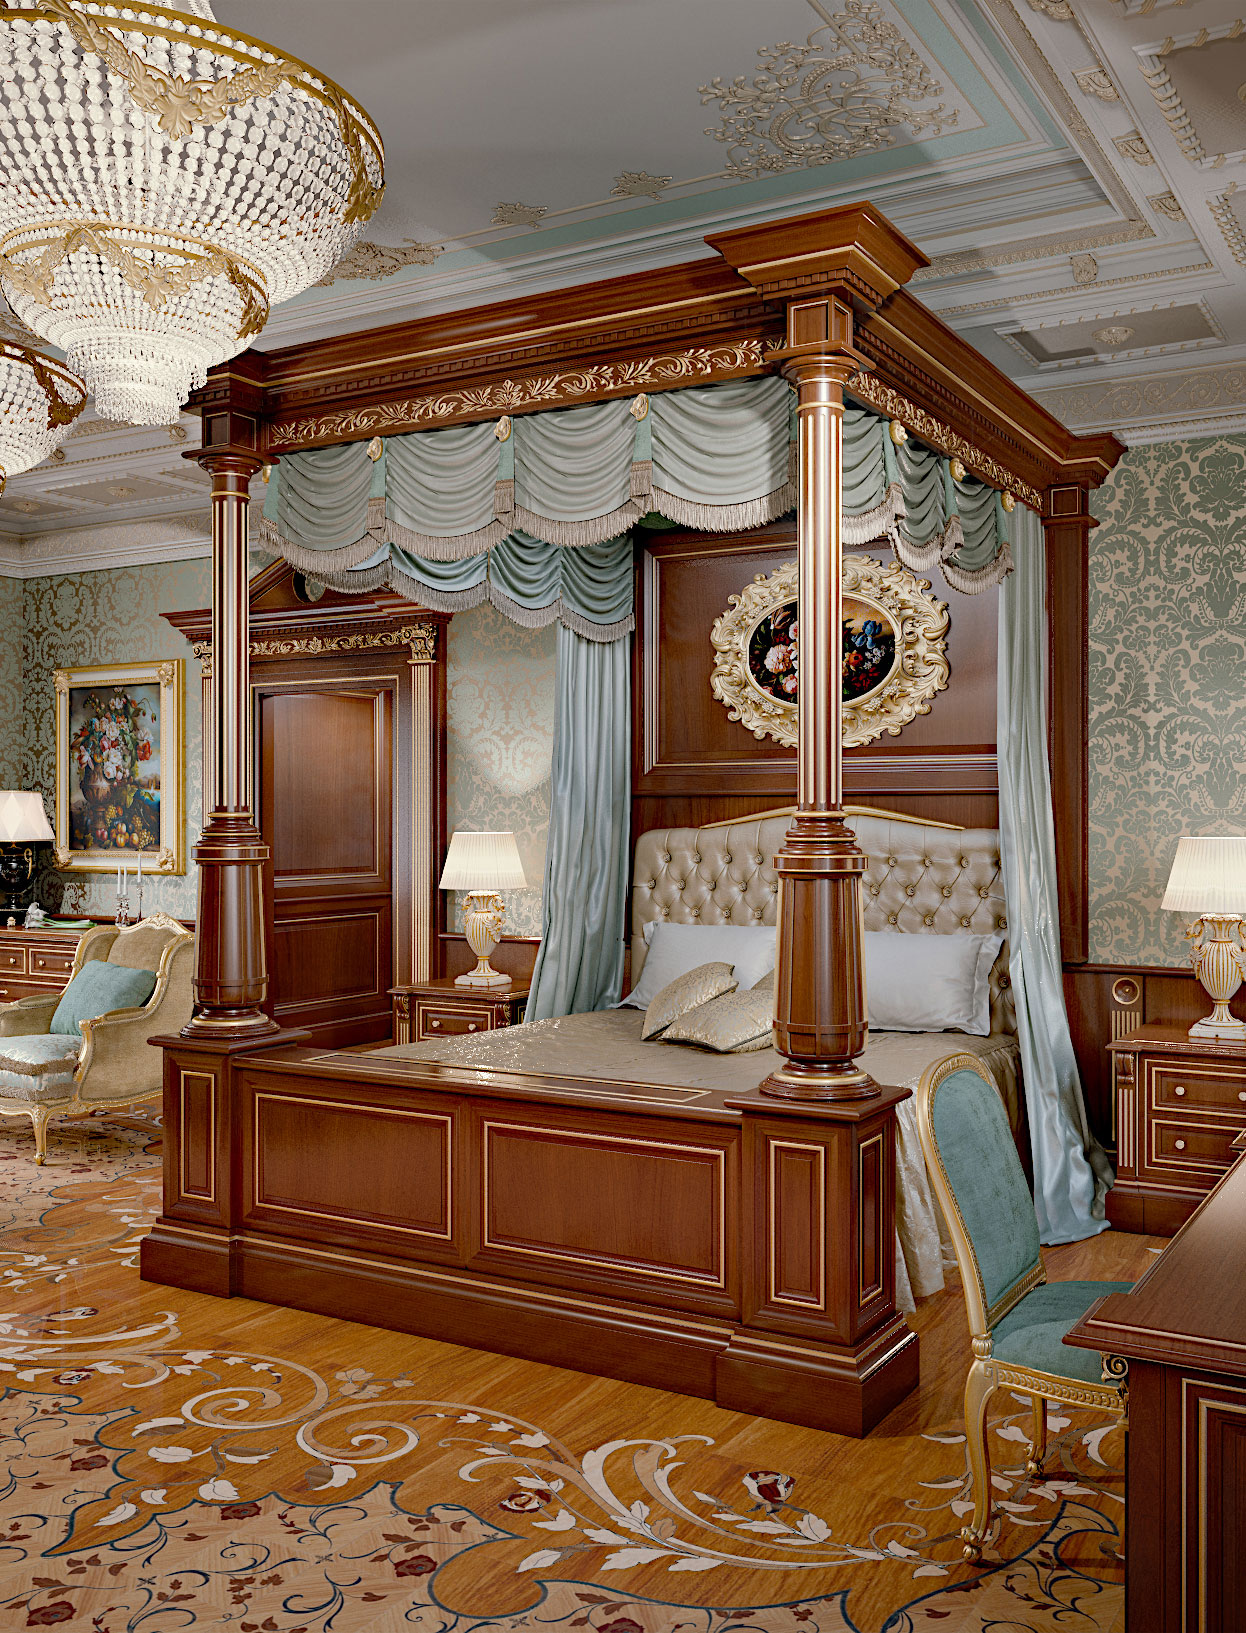 Faoma bespoke four-poster bed